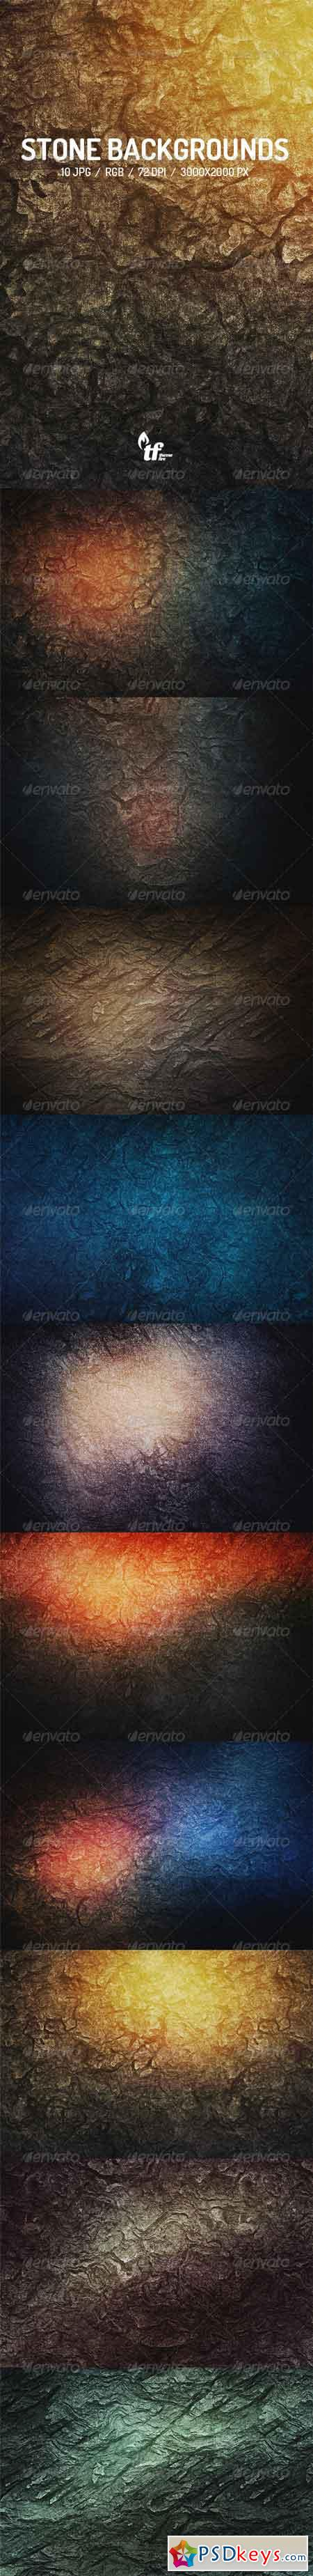 Stone Backgrounds 7862895